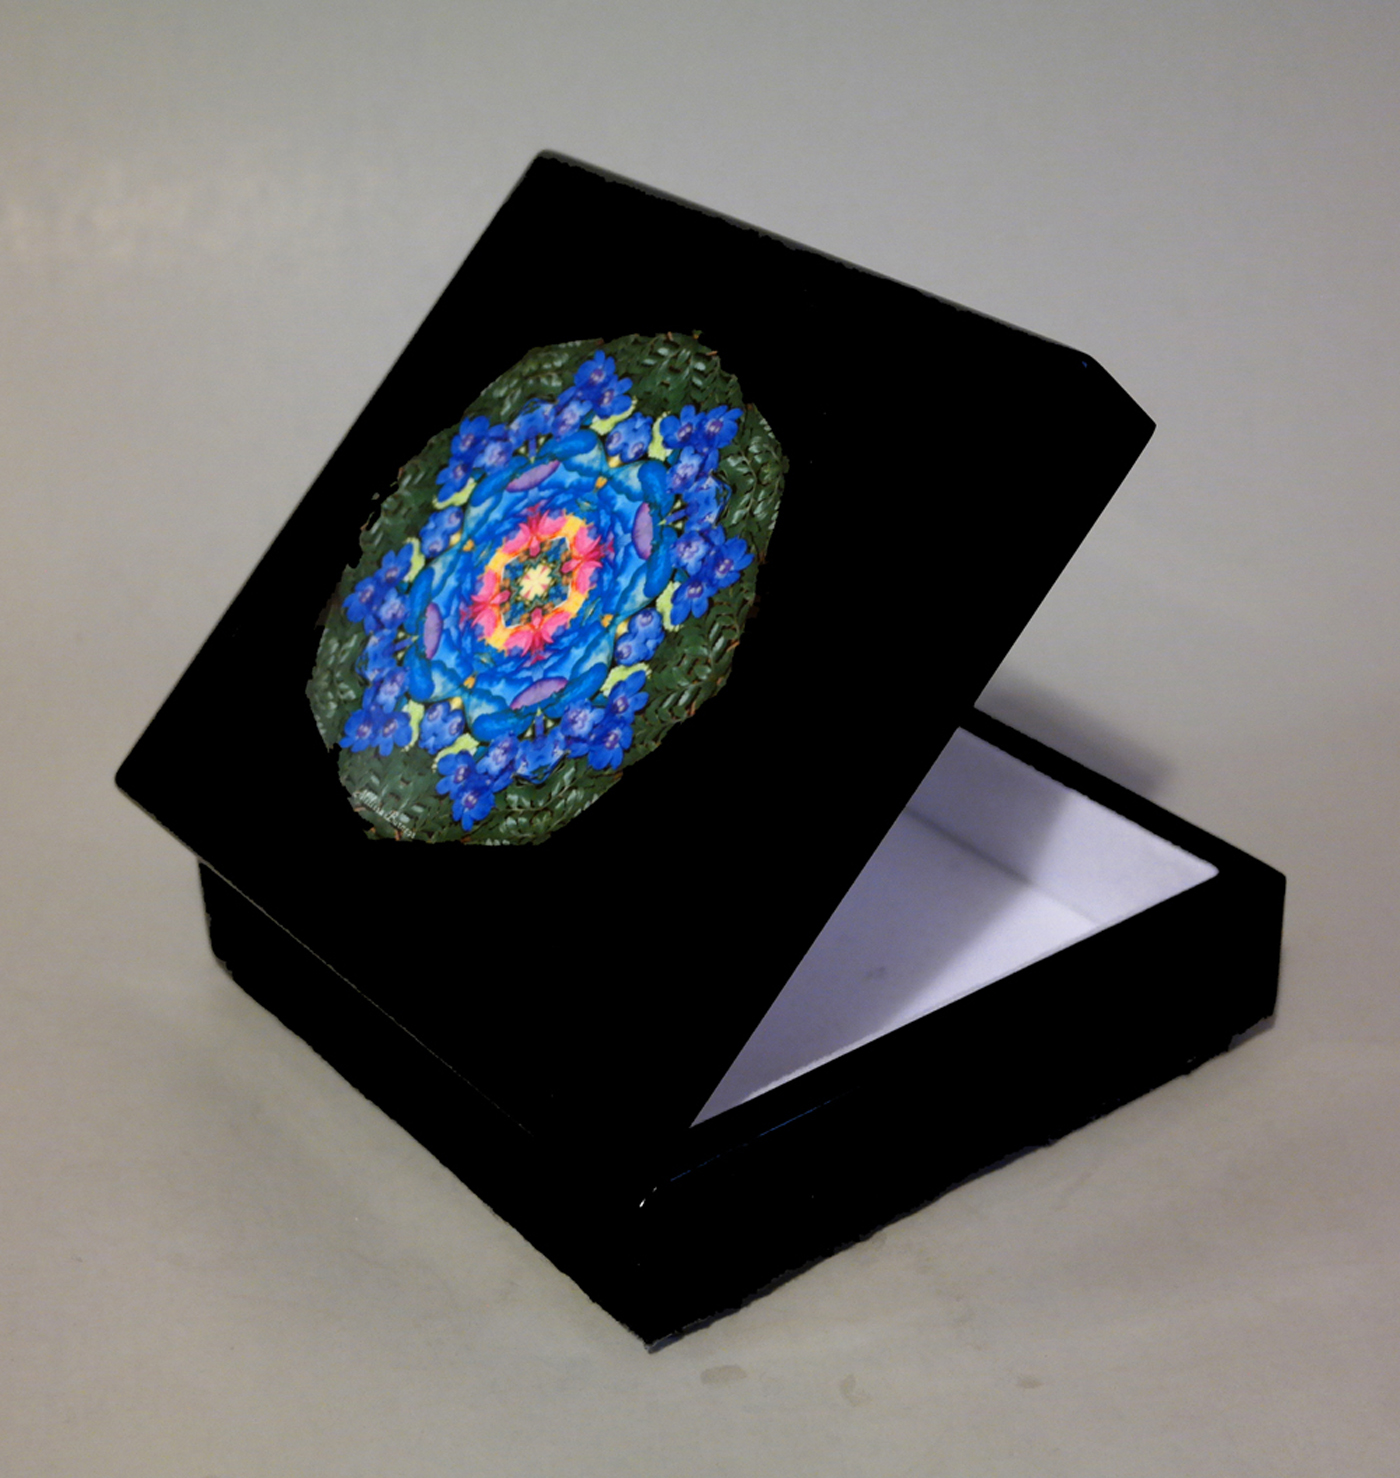 Rainbow Rose Music Box Keepsake Box Trinket Box Jewelry Box Boho Chic Mandala New Age Sacred Geometry Hippie Kaleidoscope Unique Gift For Her Kaleidoscopic Symphony